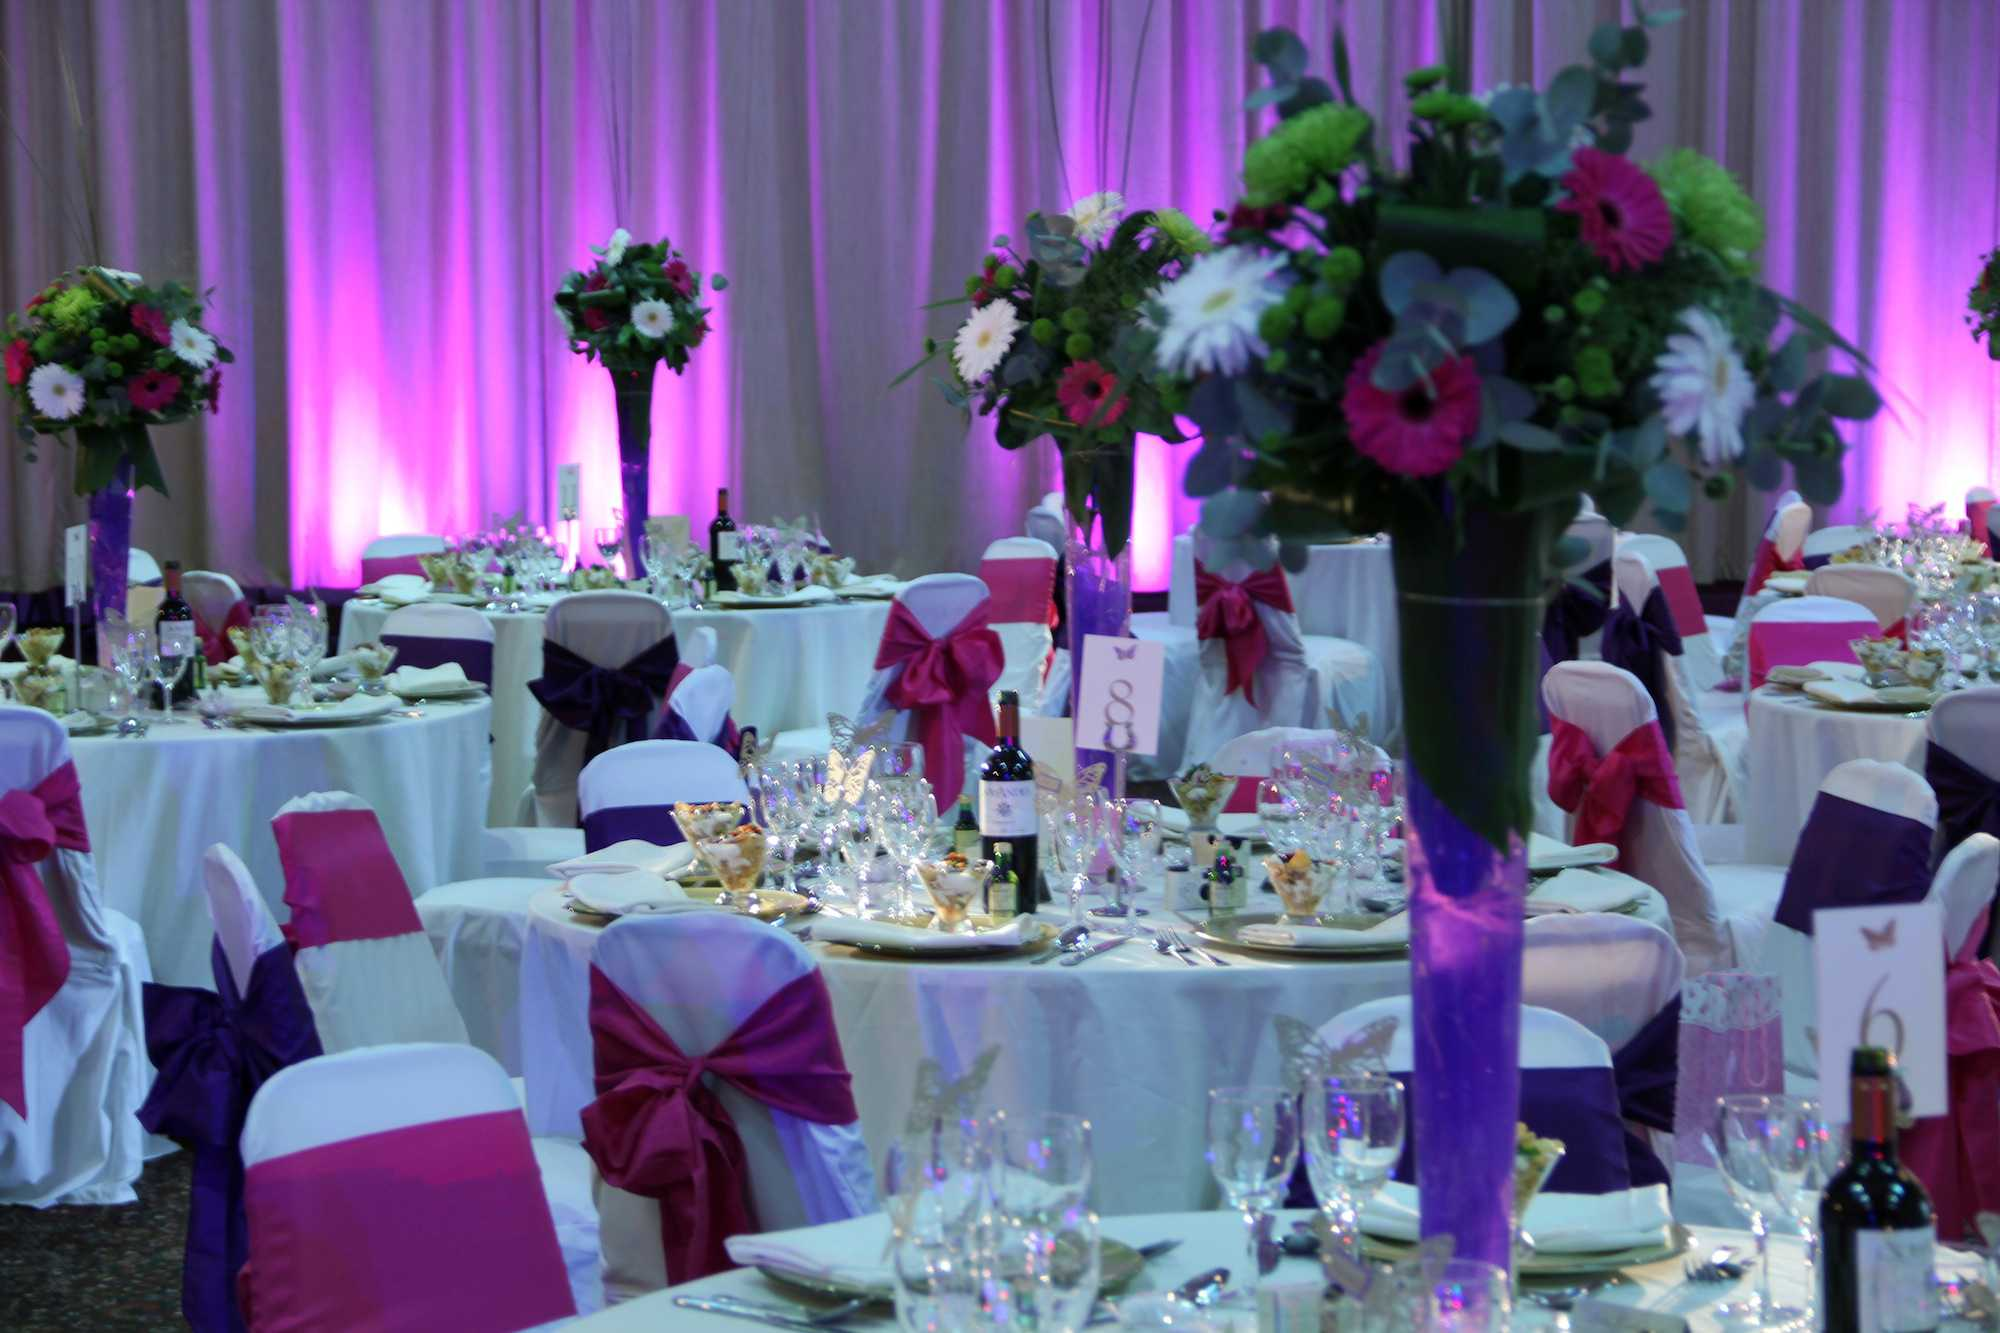 Wedding Lighting Hire at Tatton Park in Cheshire. White Drape, Pink Uplighters and Table Pinspots.